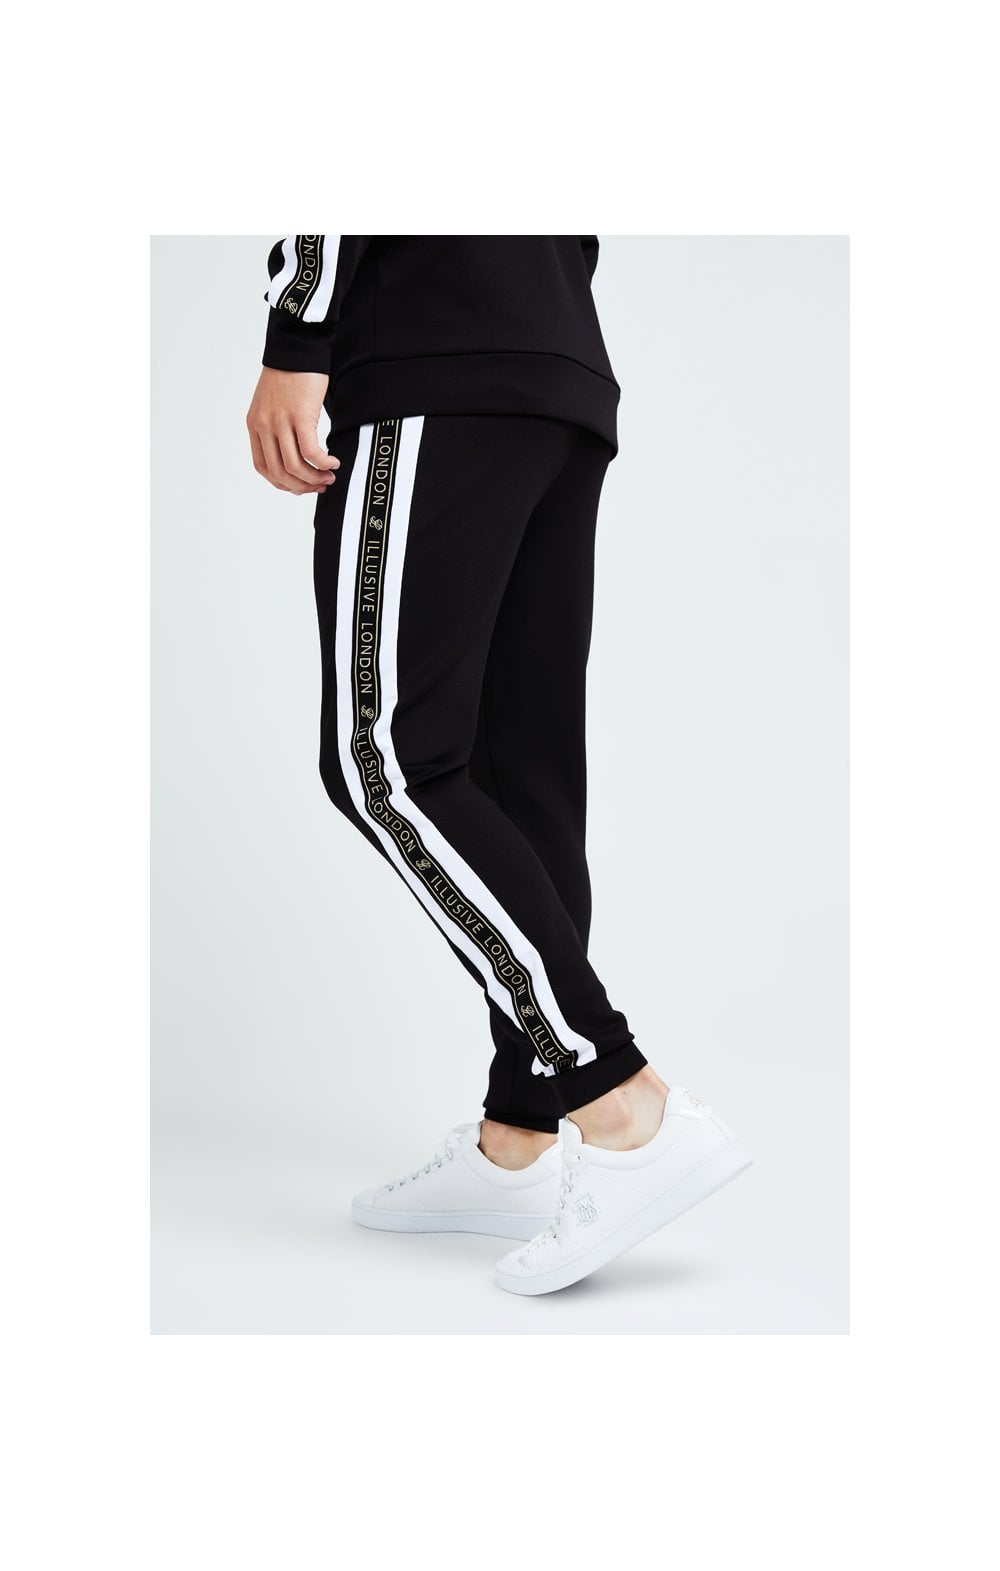 Illusive London Diverge Jogger - Black Gold & White (2)